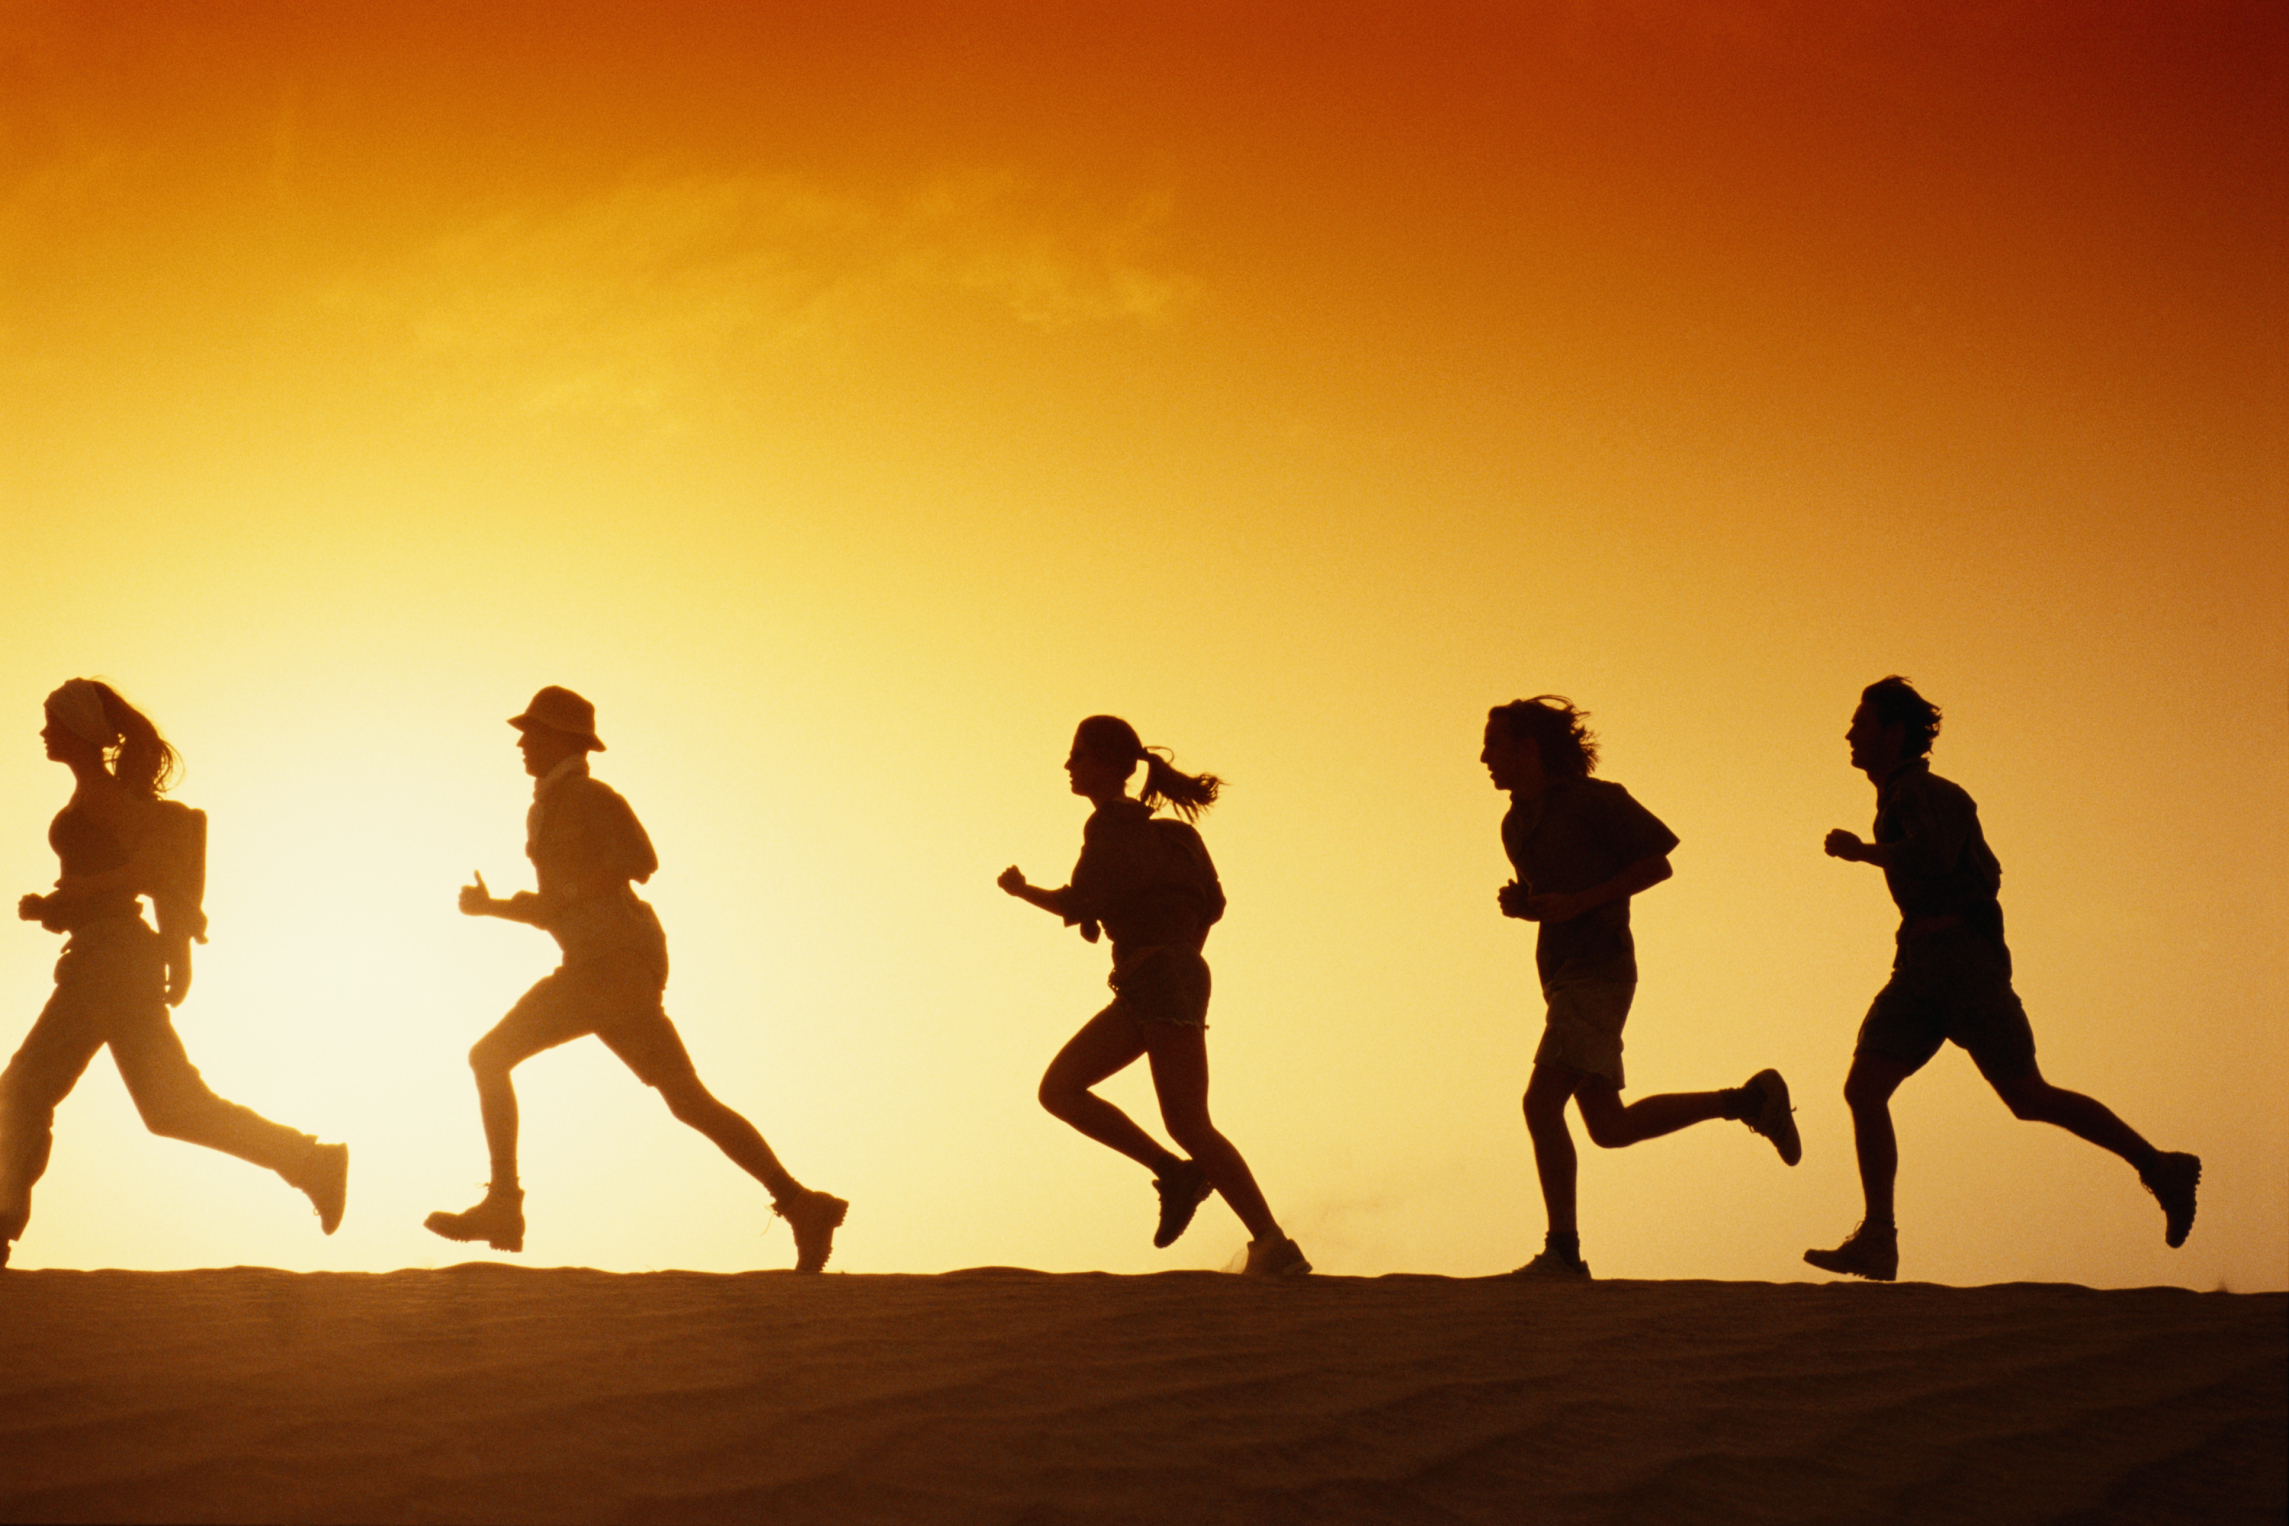 Average 10k Time >> What Is The Average Time For A 10k Run For A Beginner